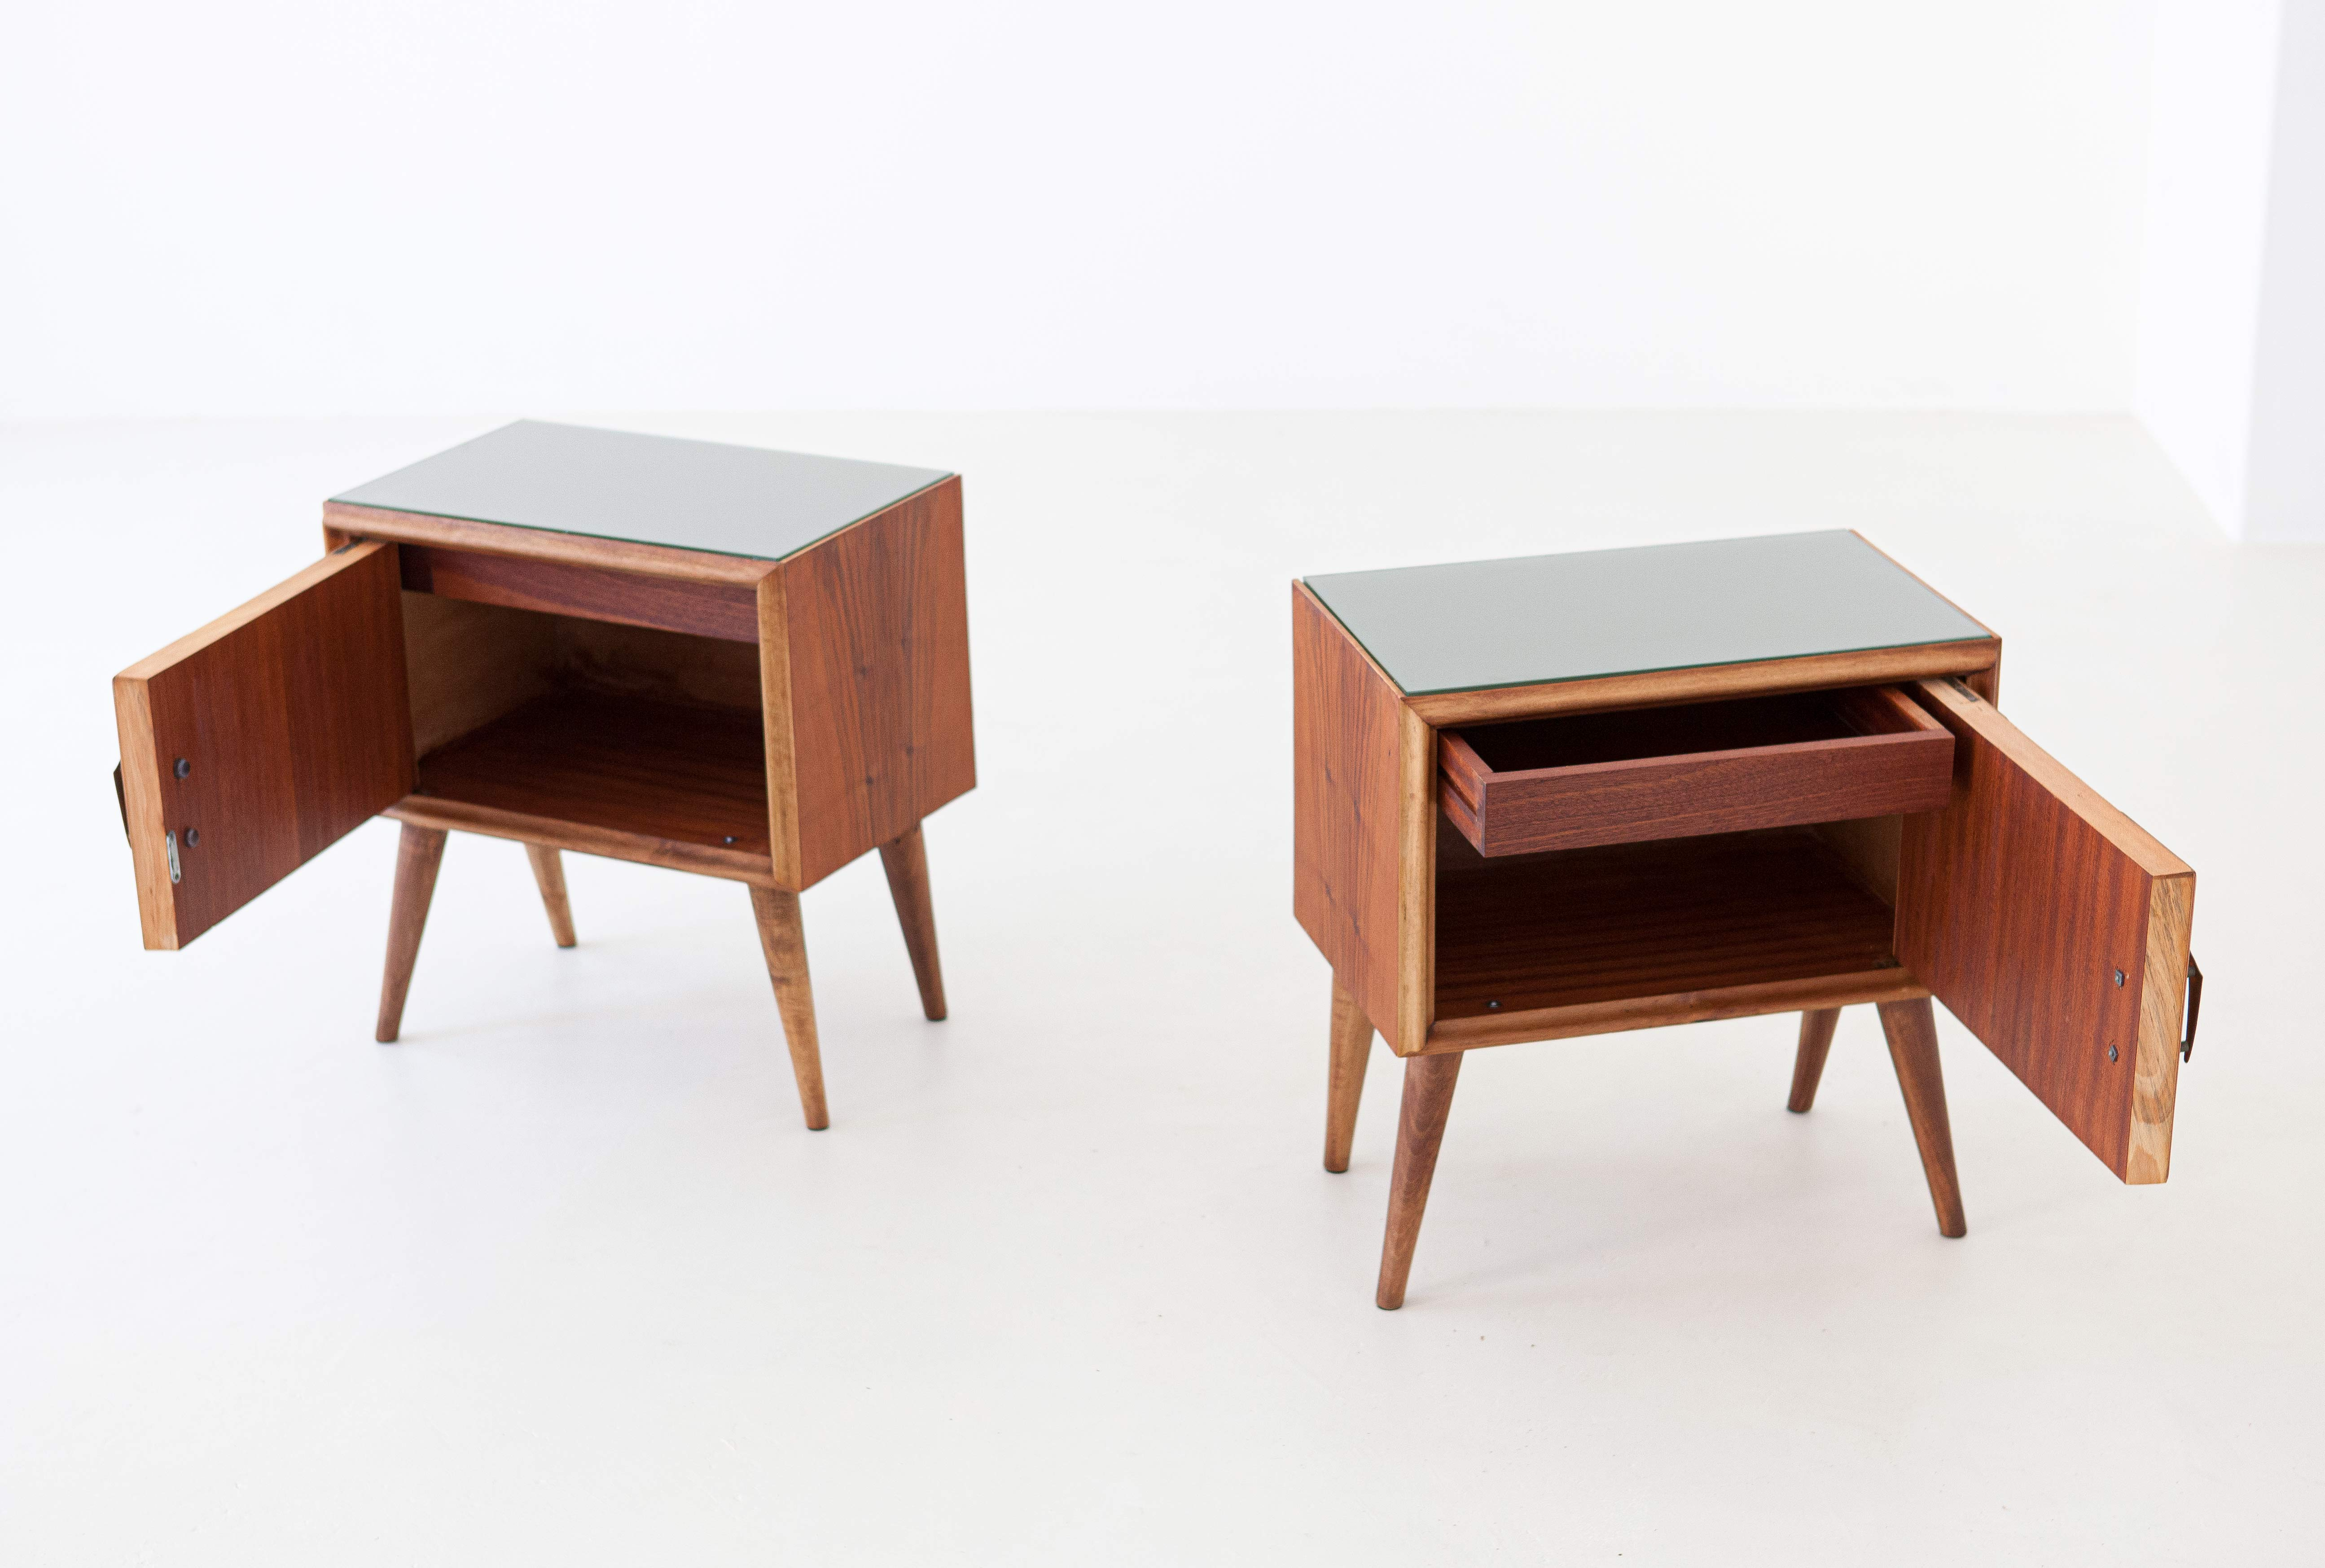 1950s-italian-exotic-wood-brass-glass-bedside-tables-9-BT81